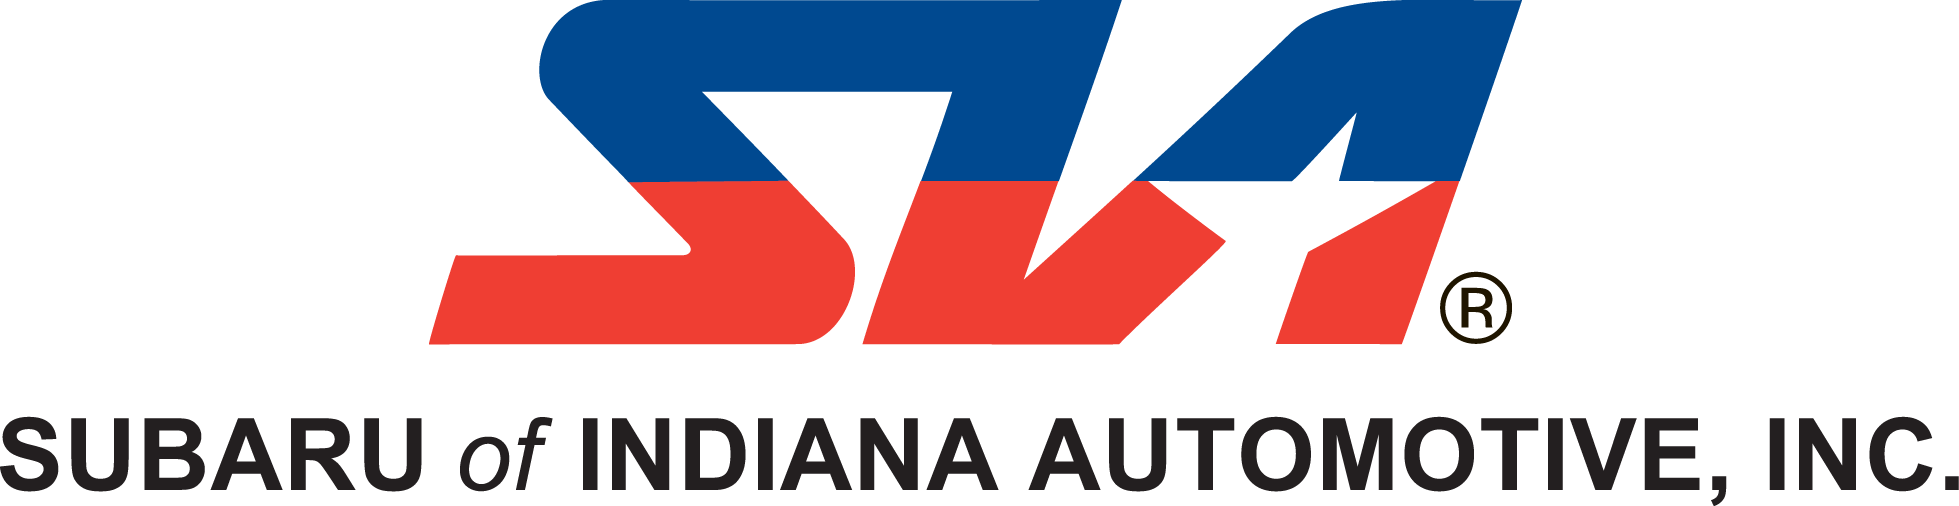 Subaru of Indiana Automotive, Inc Logo